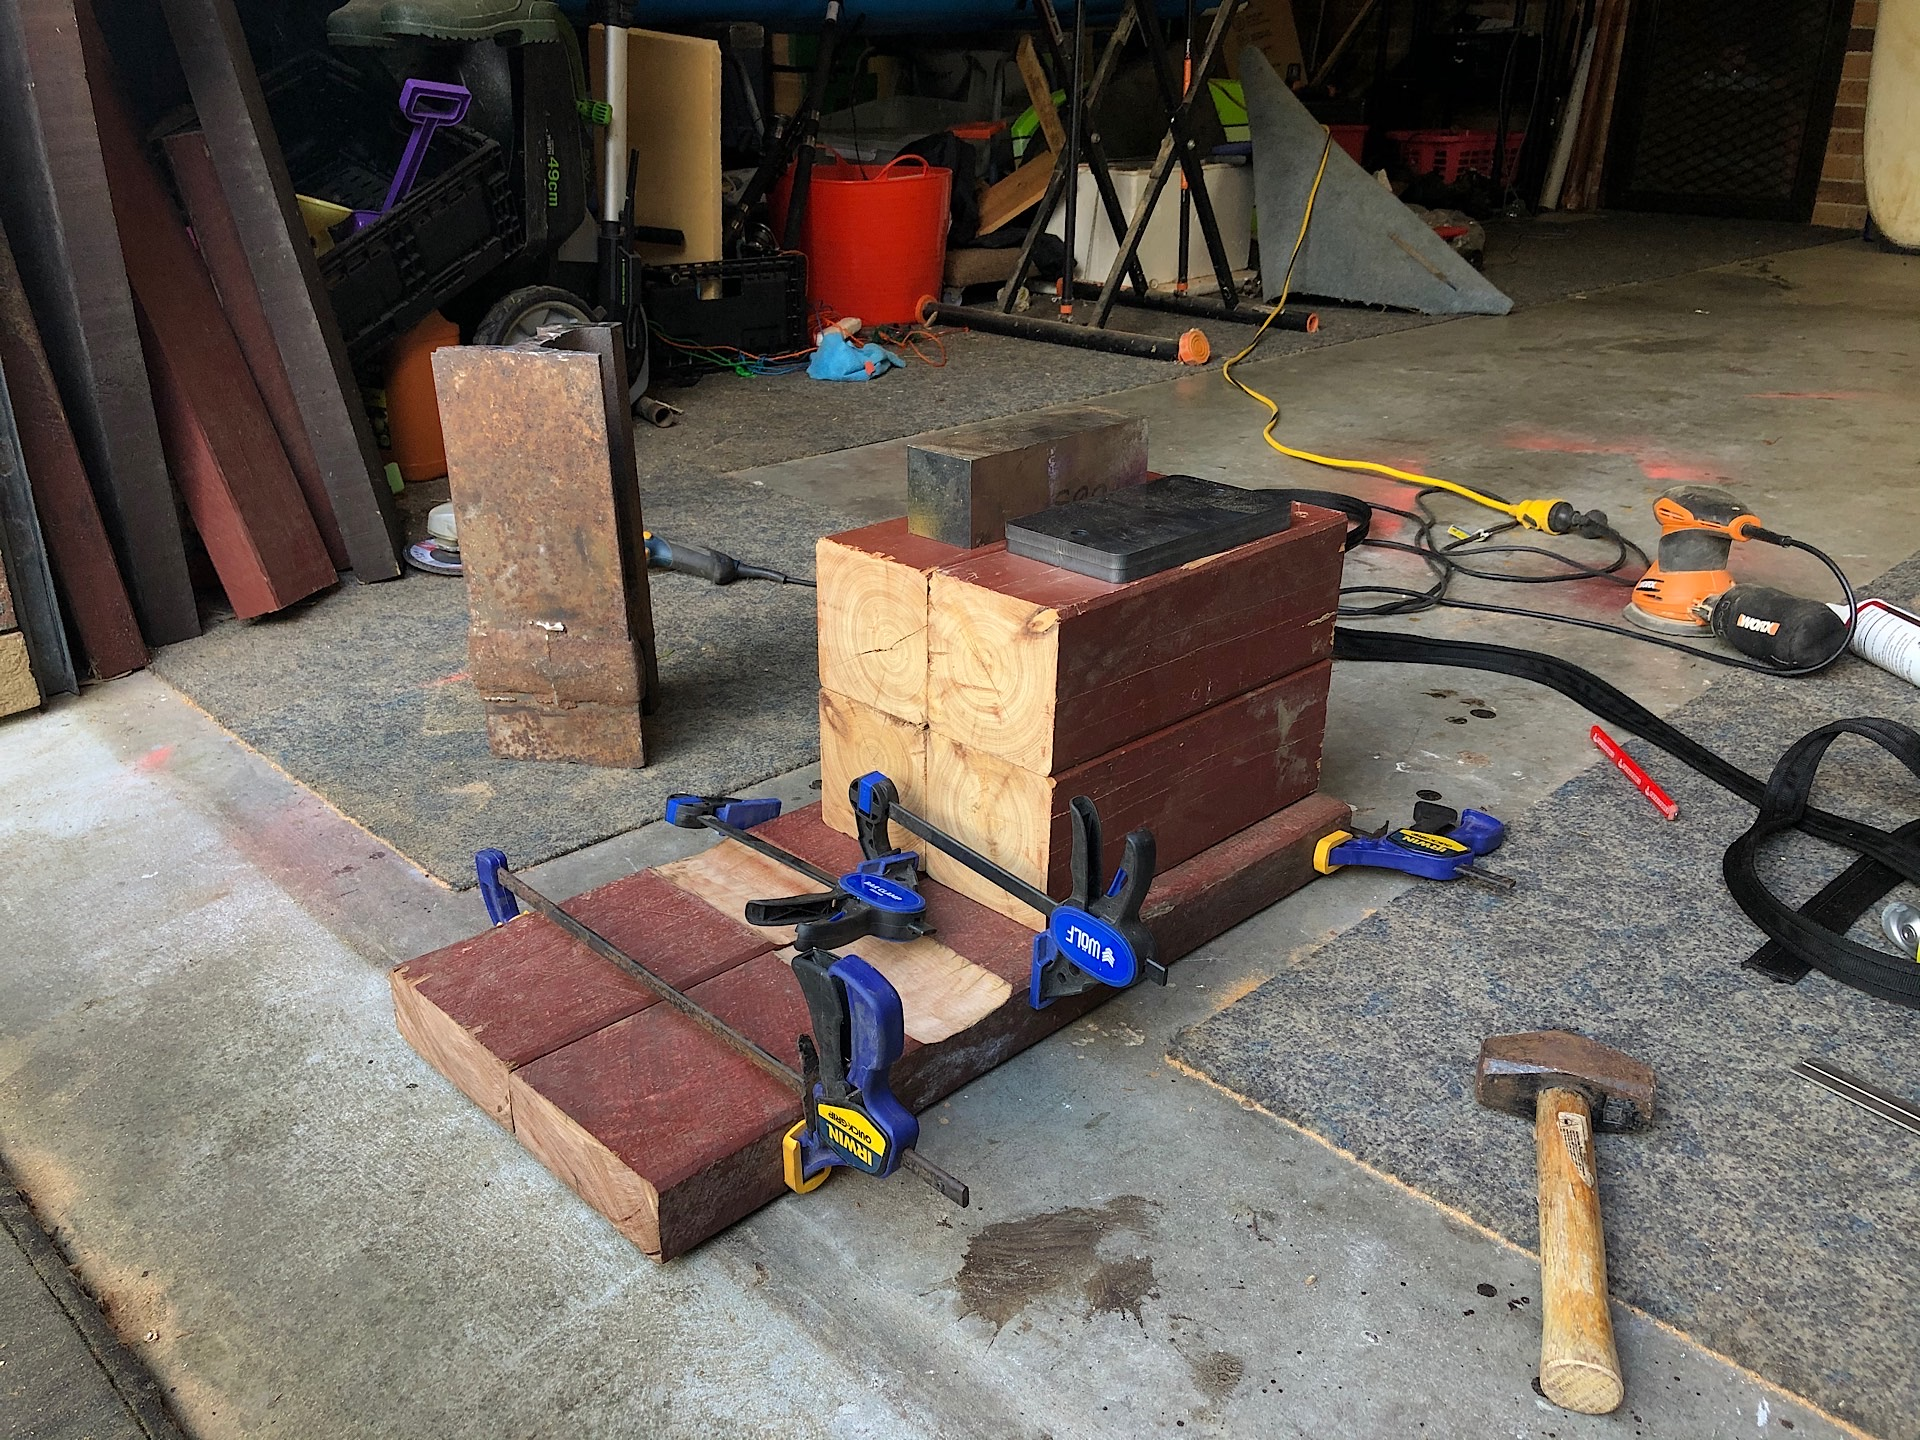 Glueing wooden board and clamping them